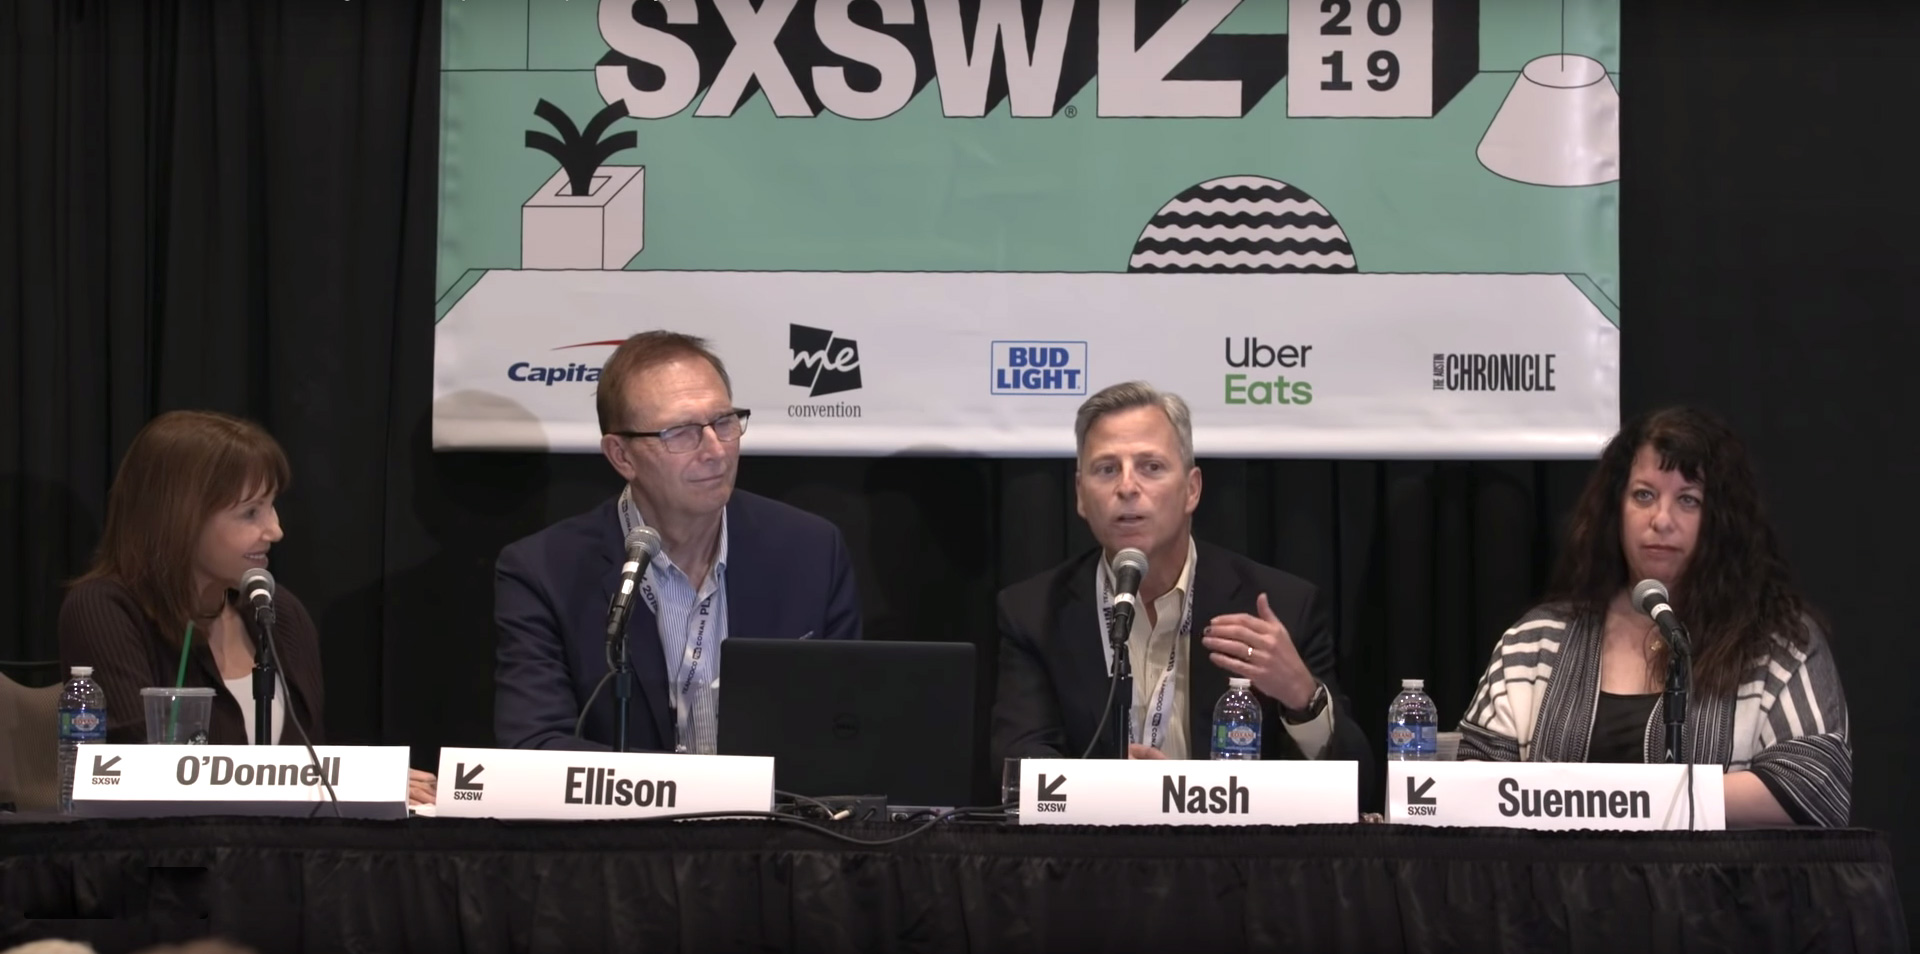 Dr. Nash at SxSW panel